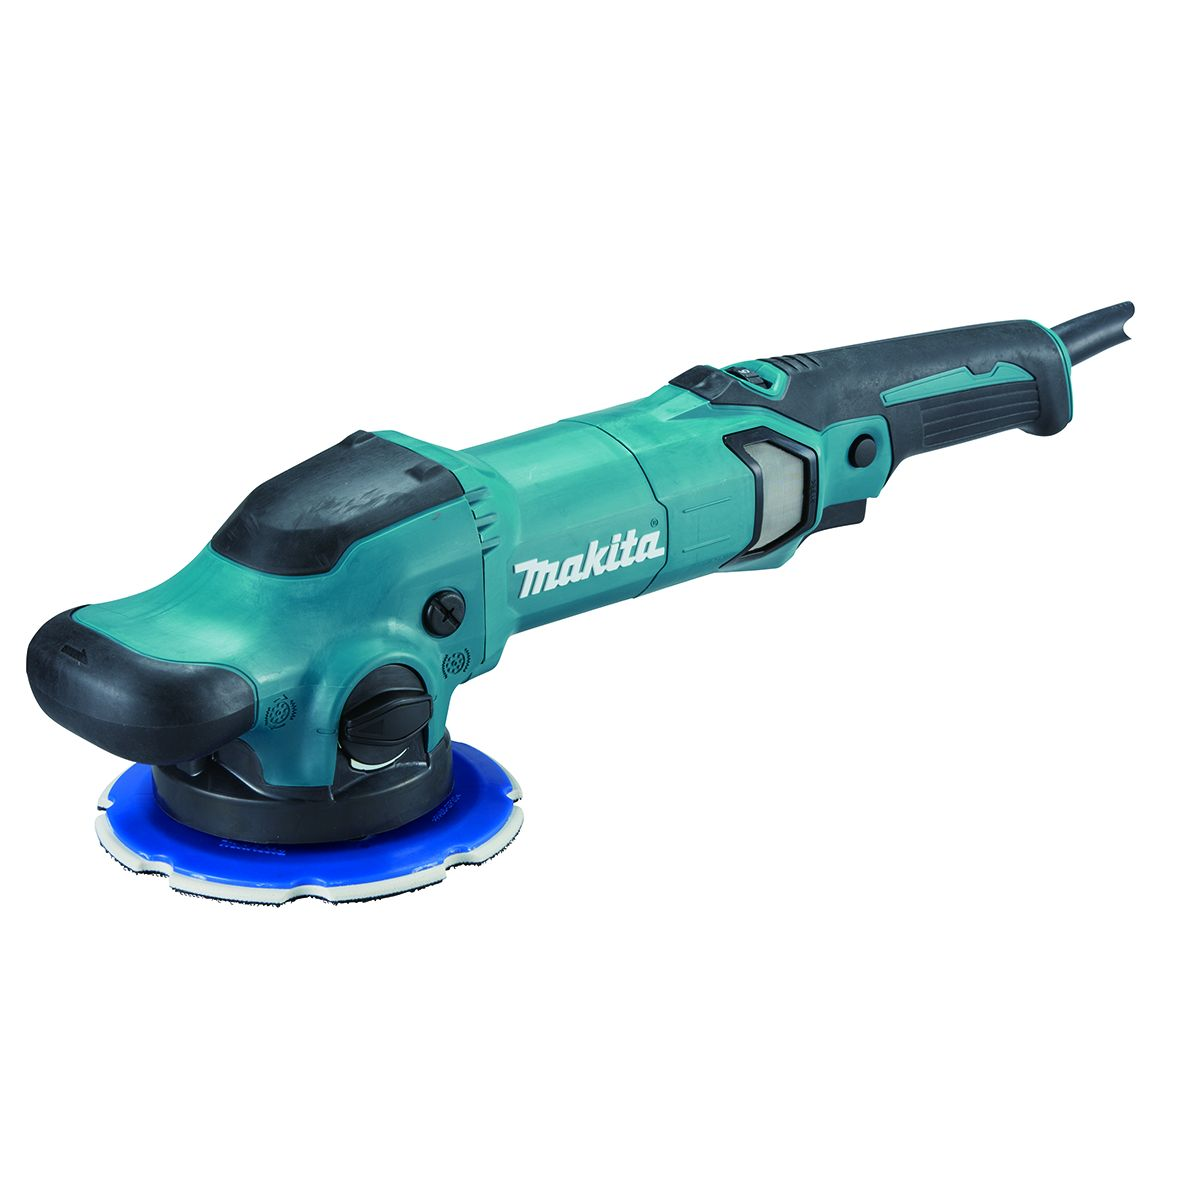 Makita PO6000C Leštička 150mm,900W